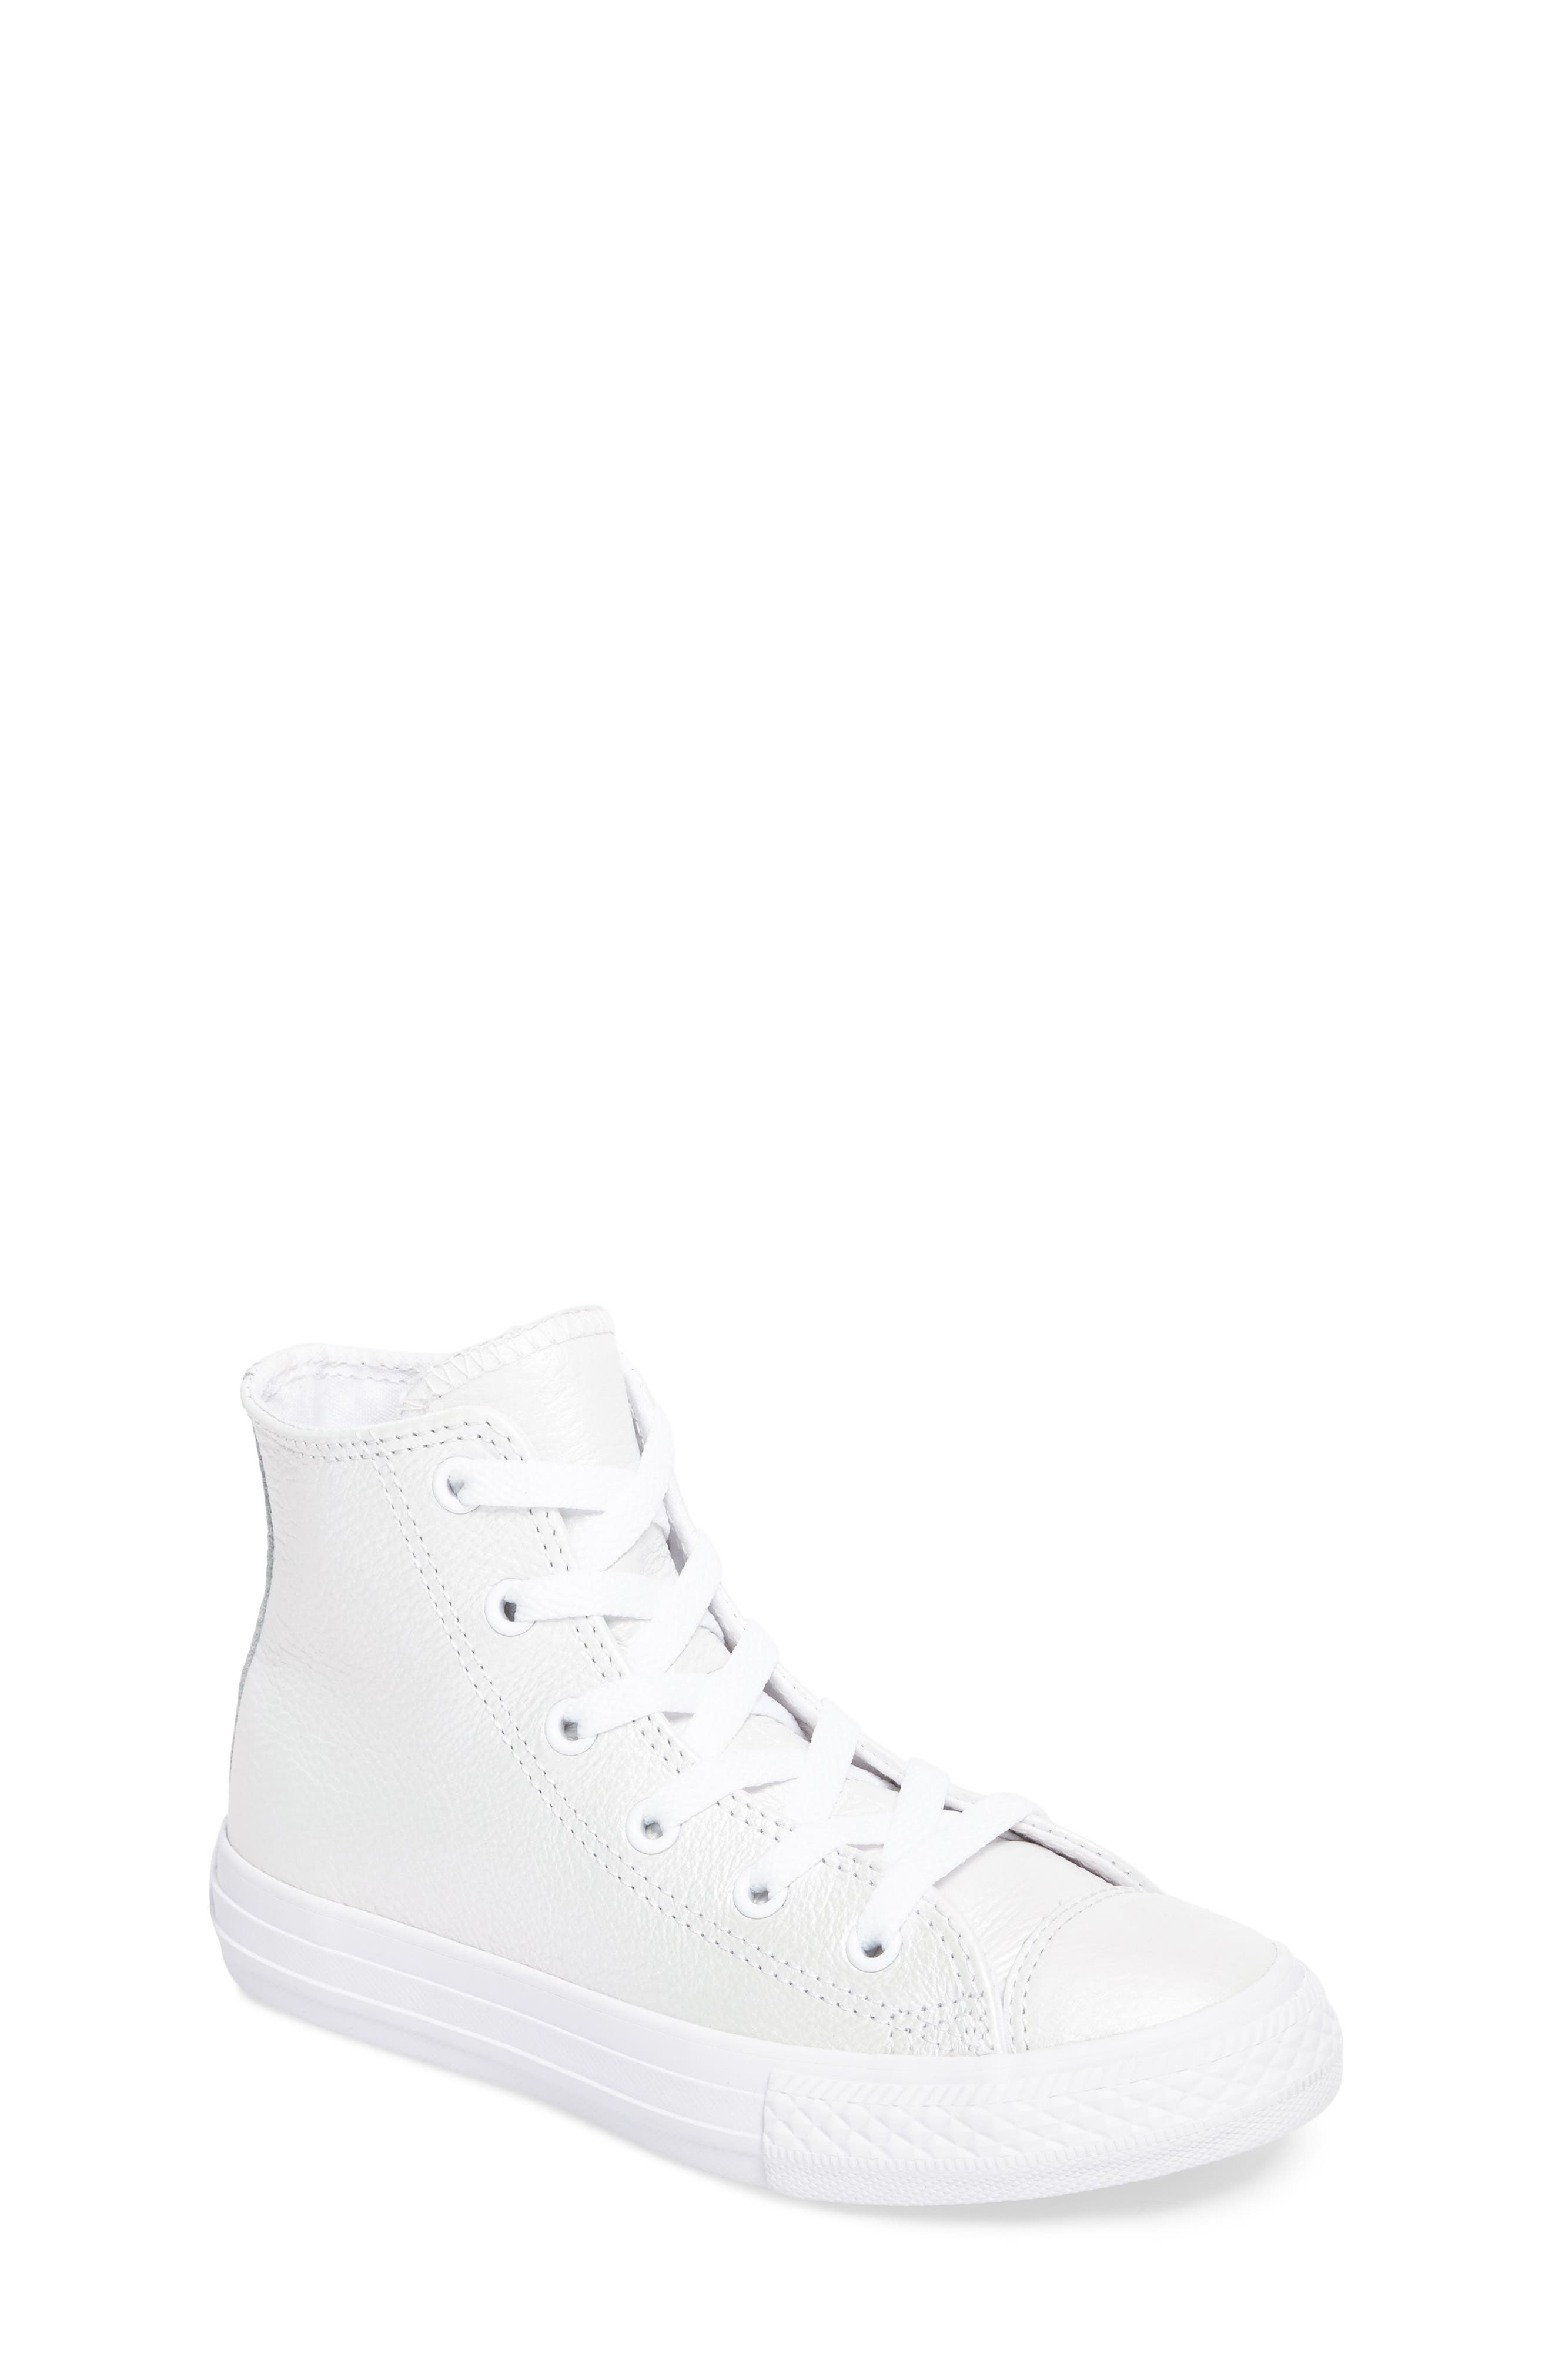 Chuck Taylor<sup>®</sup> All Star<sup>®</sup> Iridescent Leather High Top Sneaker,                         Main,                         color,